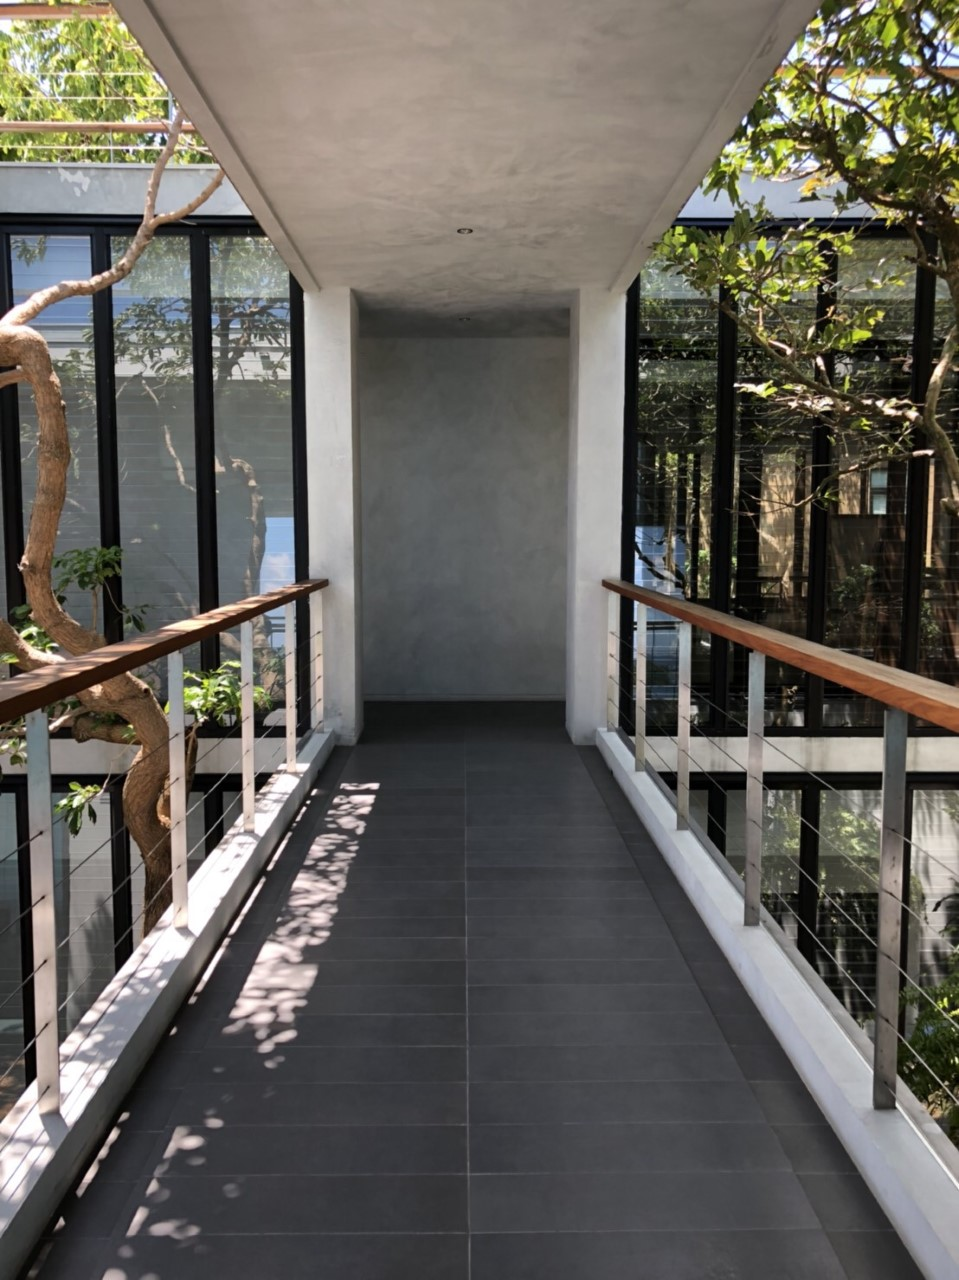 Connecting walkway between two parts of the home with Breezway Louvres either side